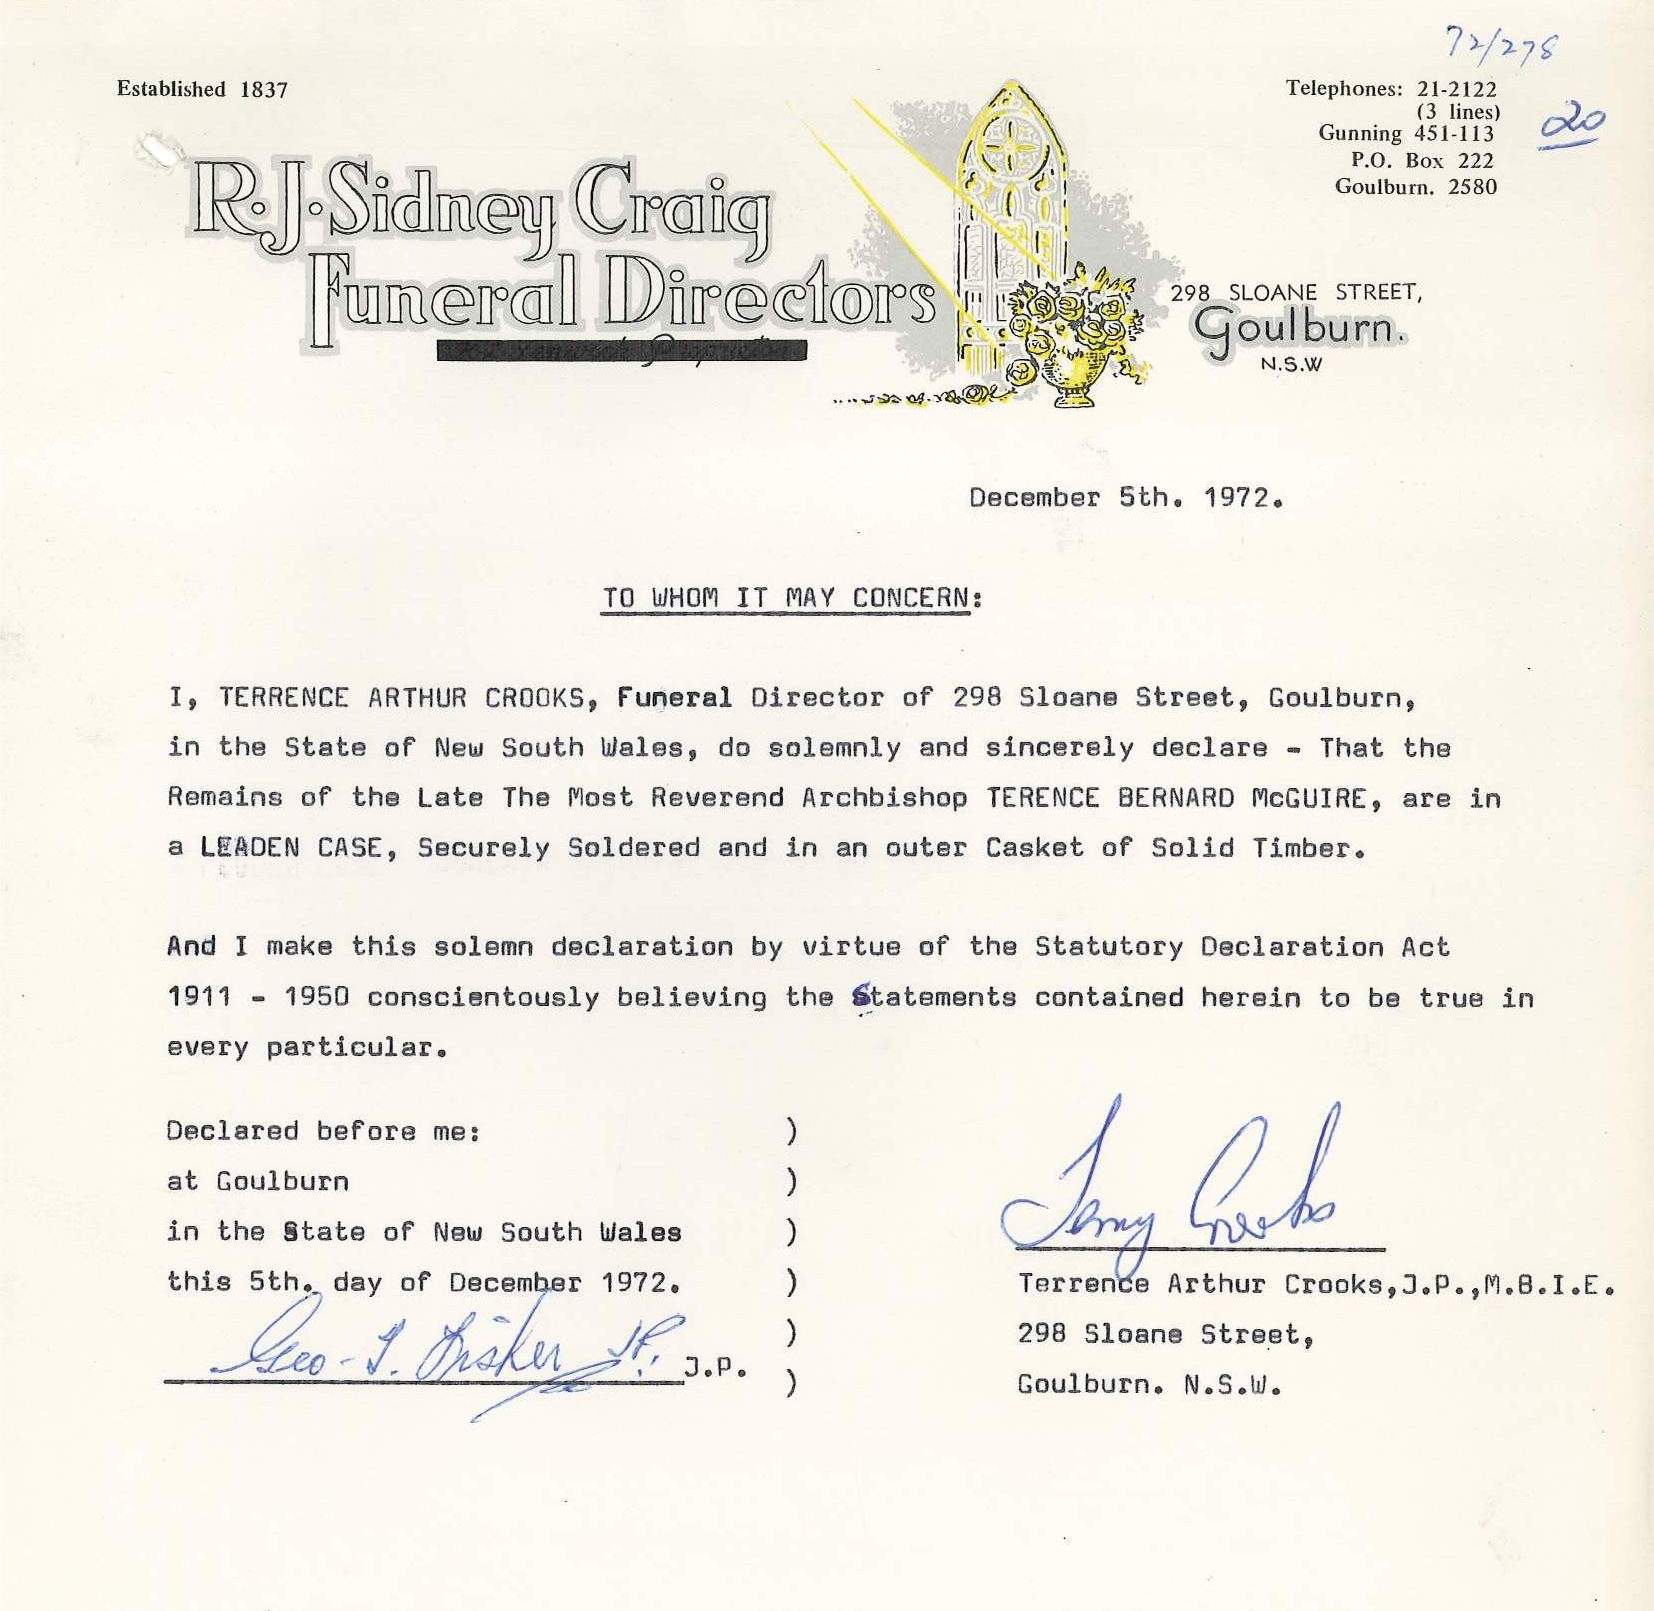 Confirmation of preservation terms by the funeral director for Archbishop McGuire